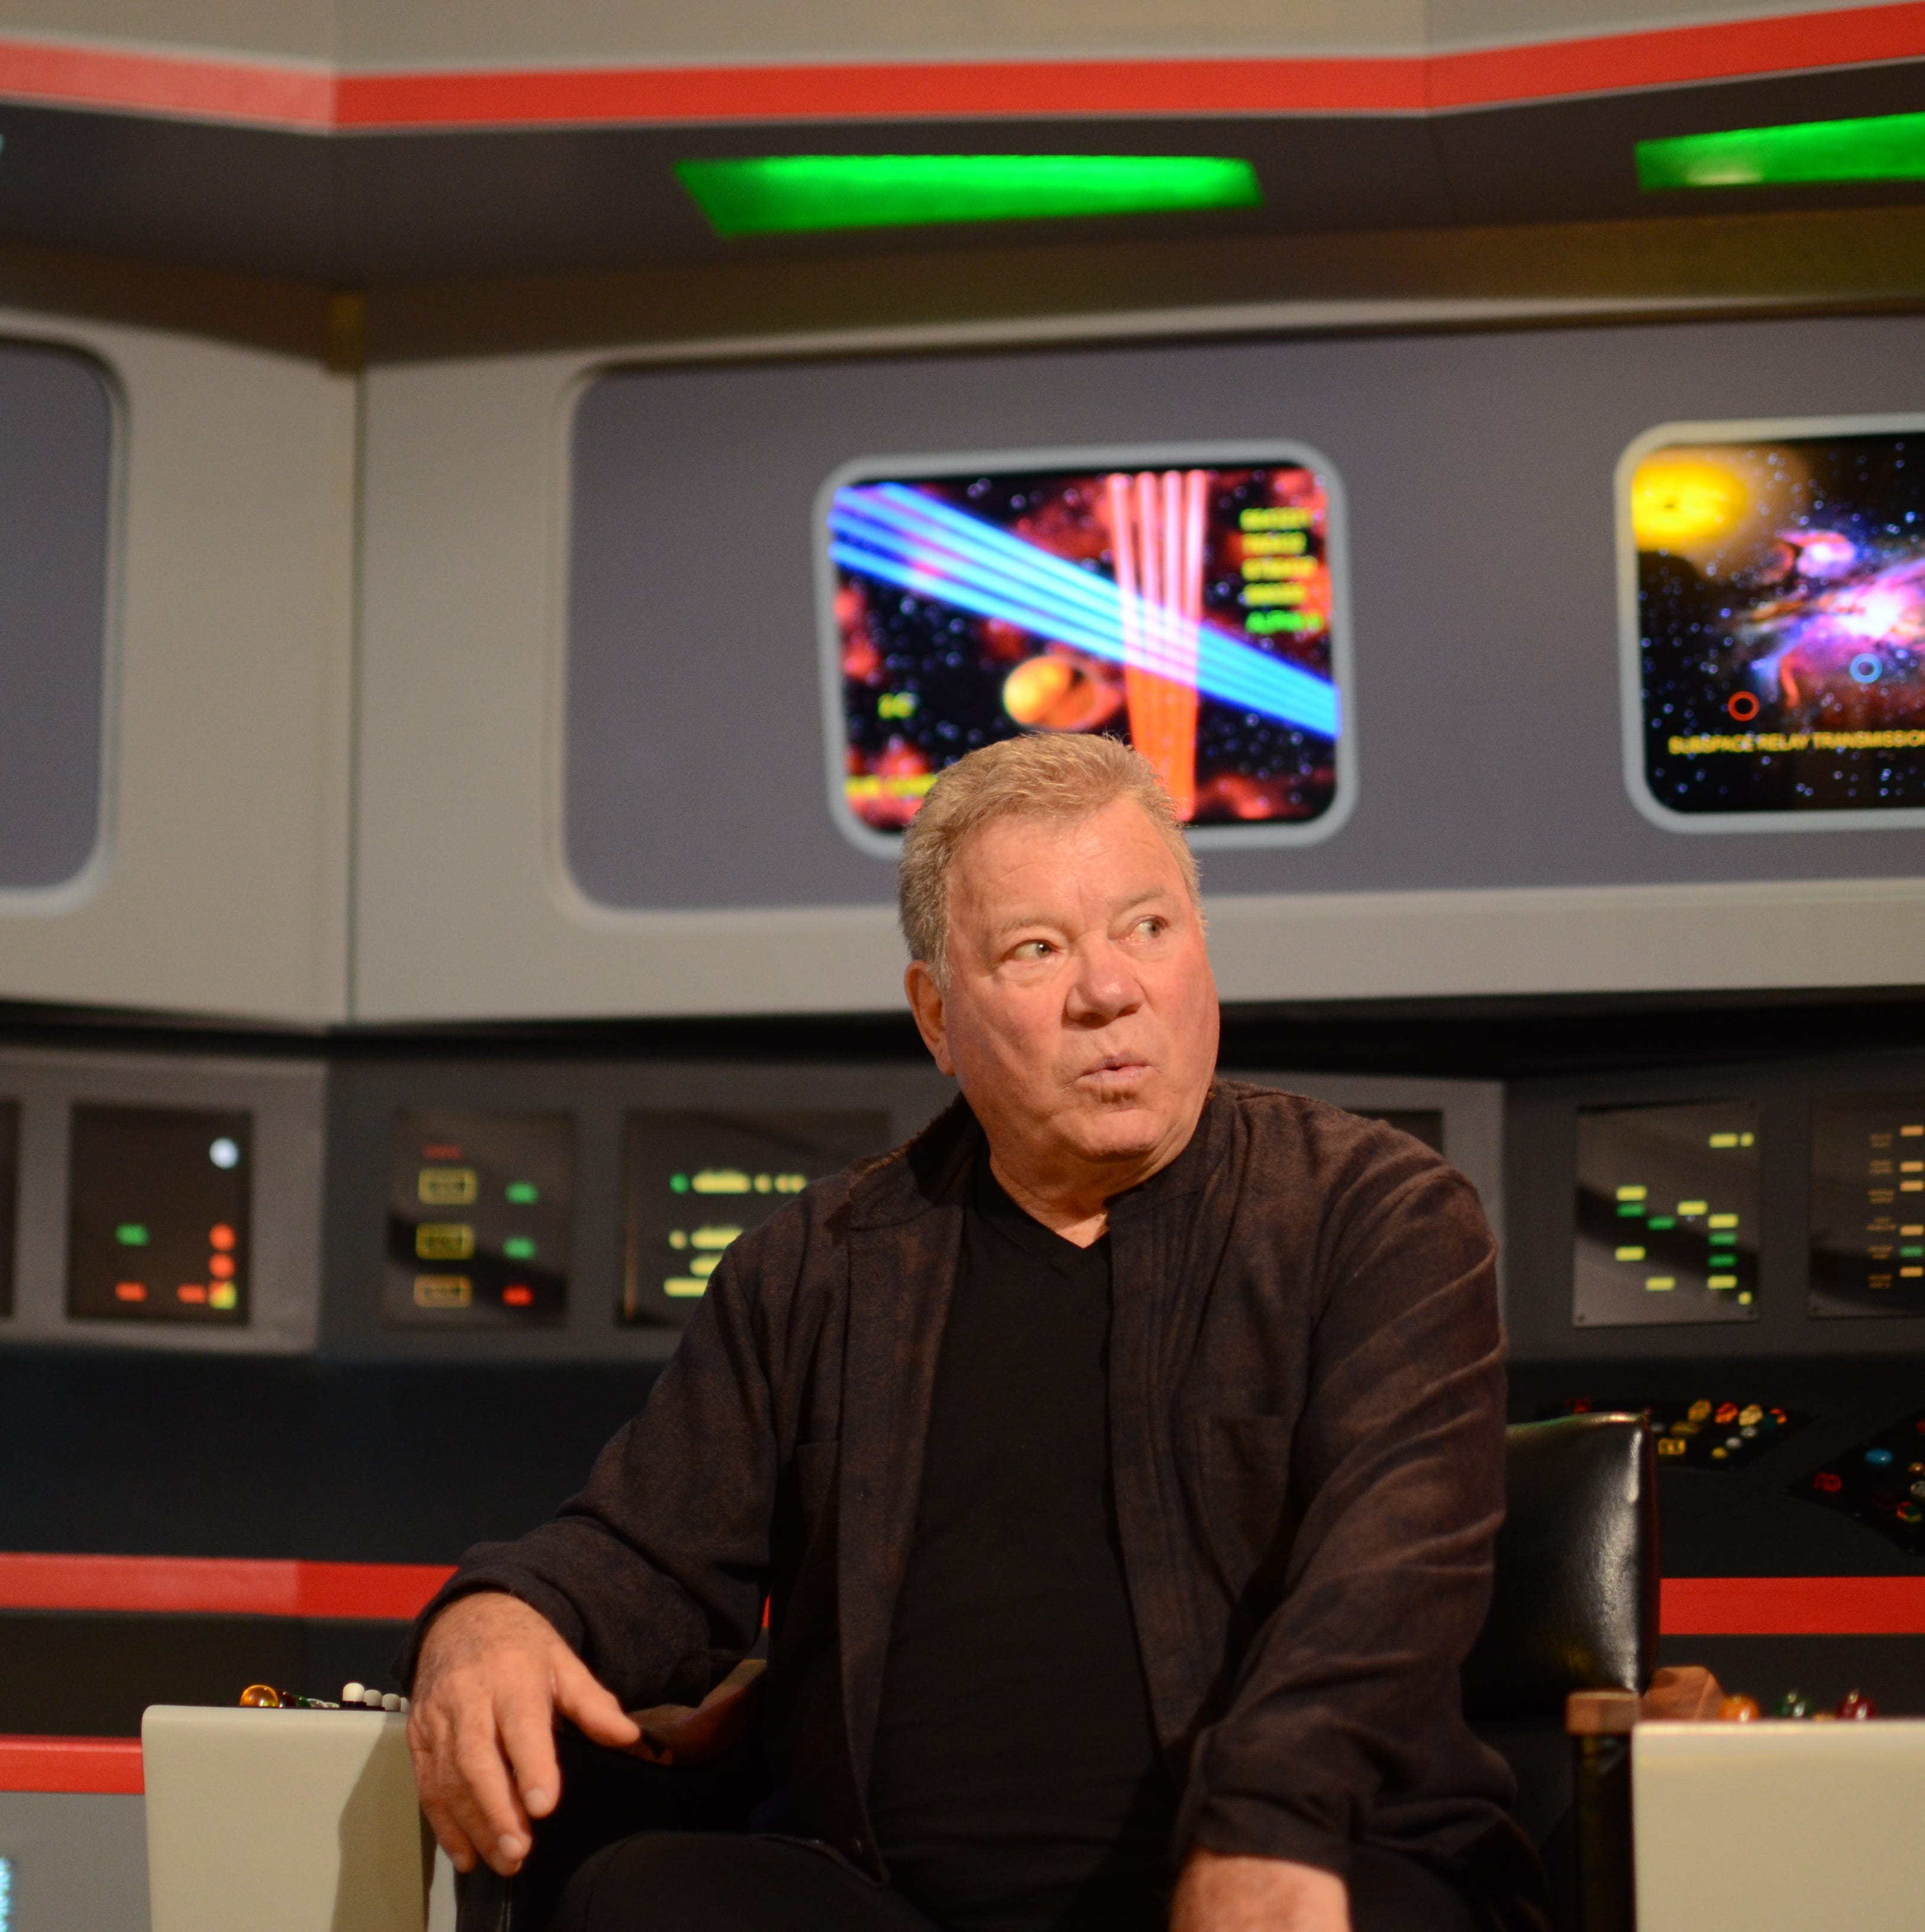 William Shatner and new captain Anson Mount visit the 'Star Trek' Enterprise replica